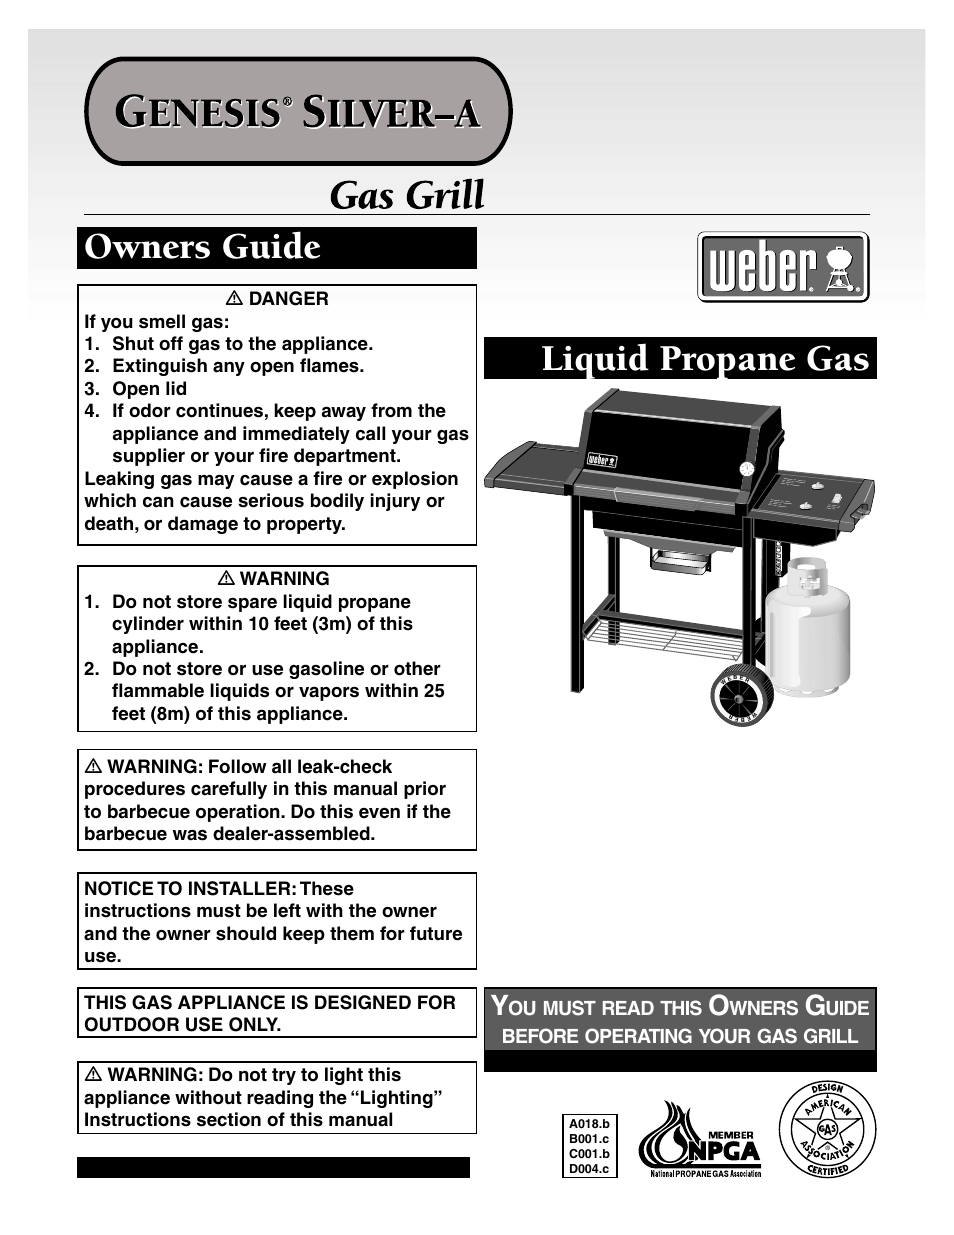 Weber Genesis Silver A User Manual 32 Pages